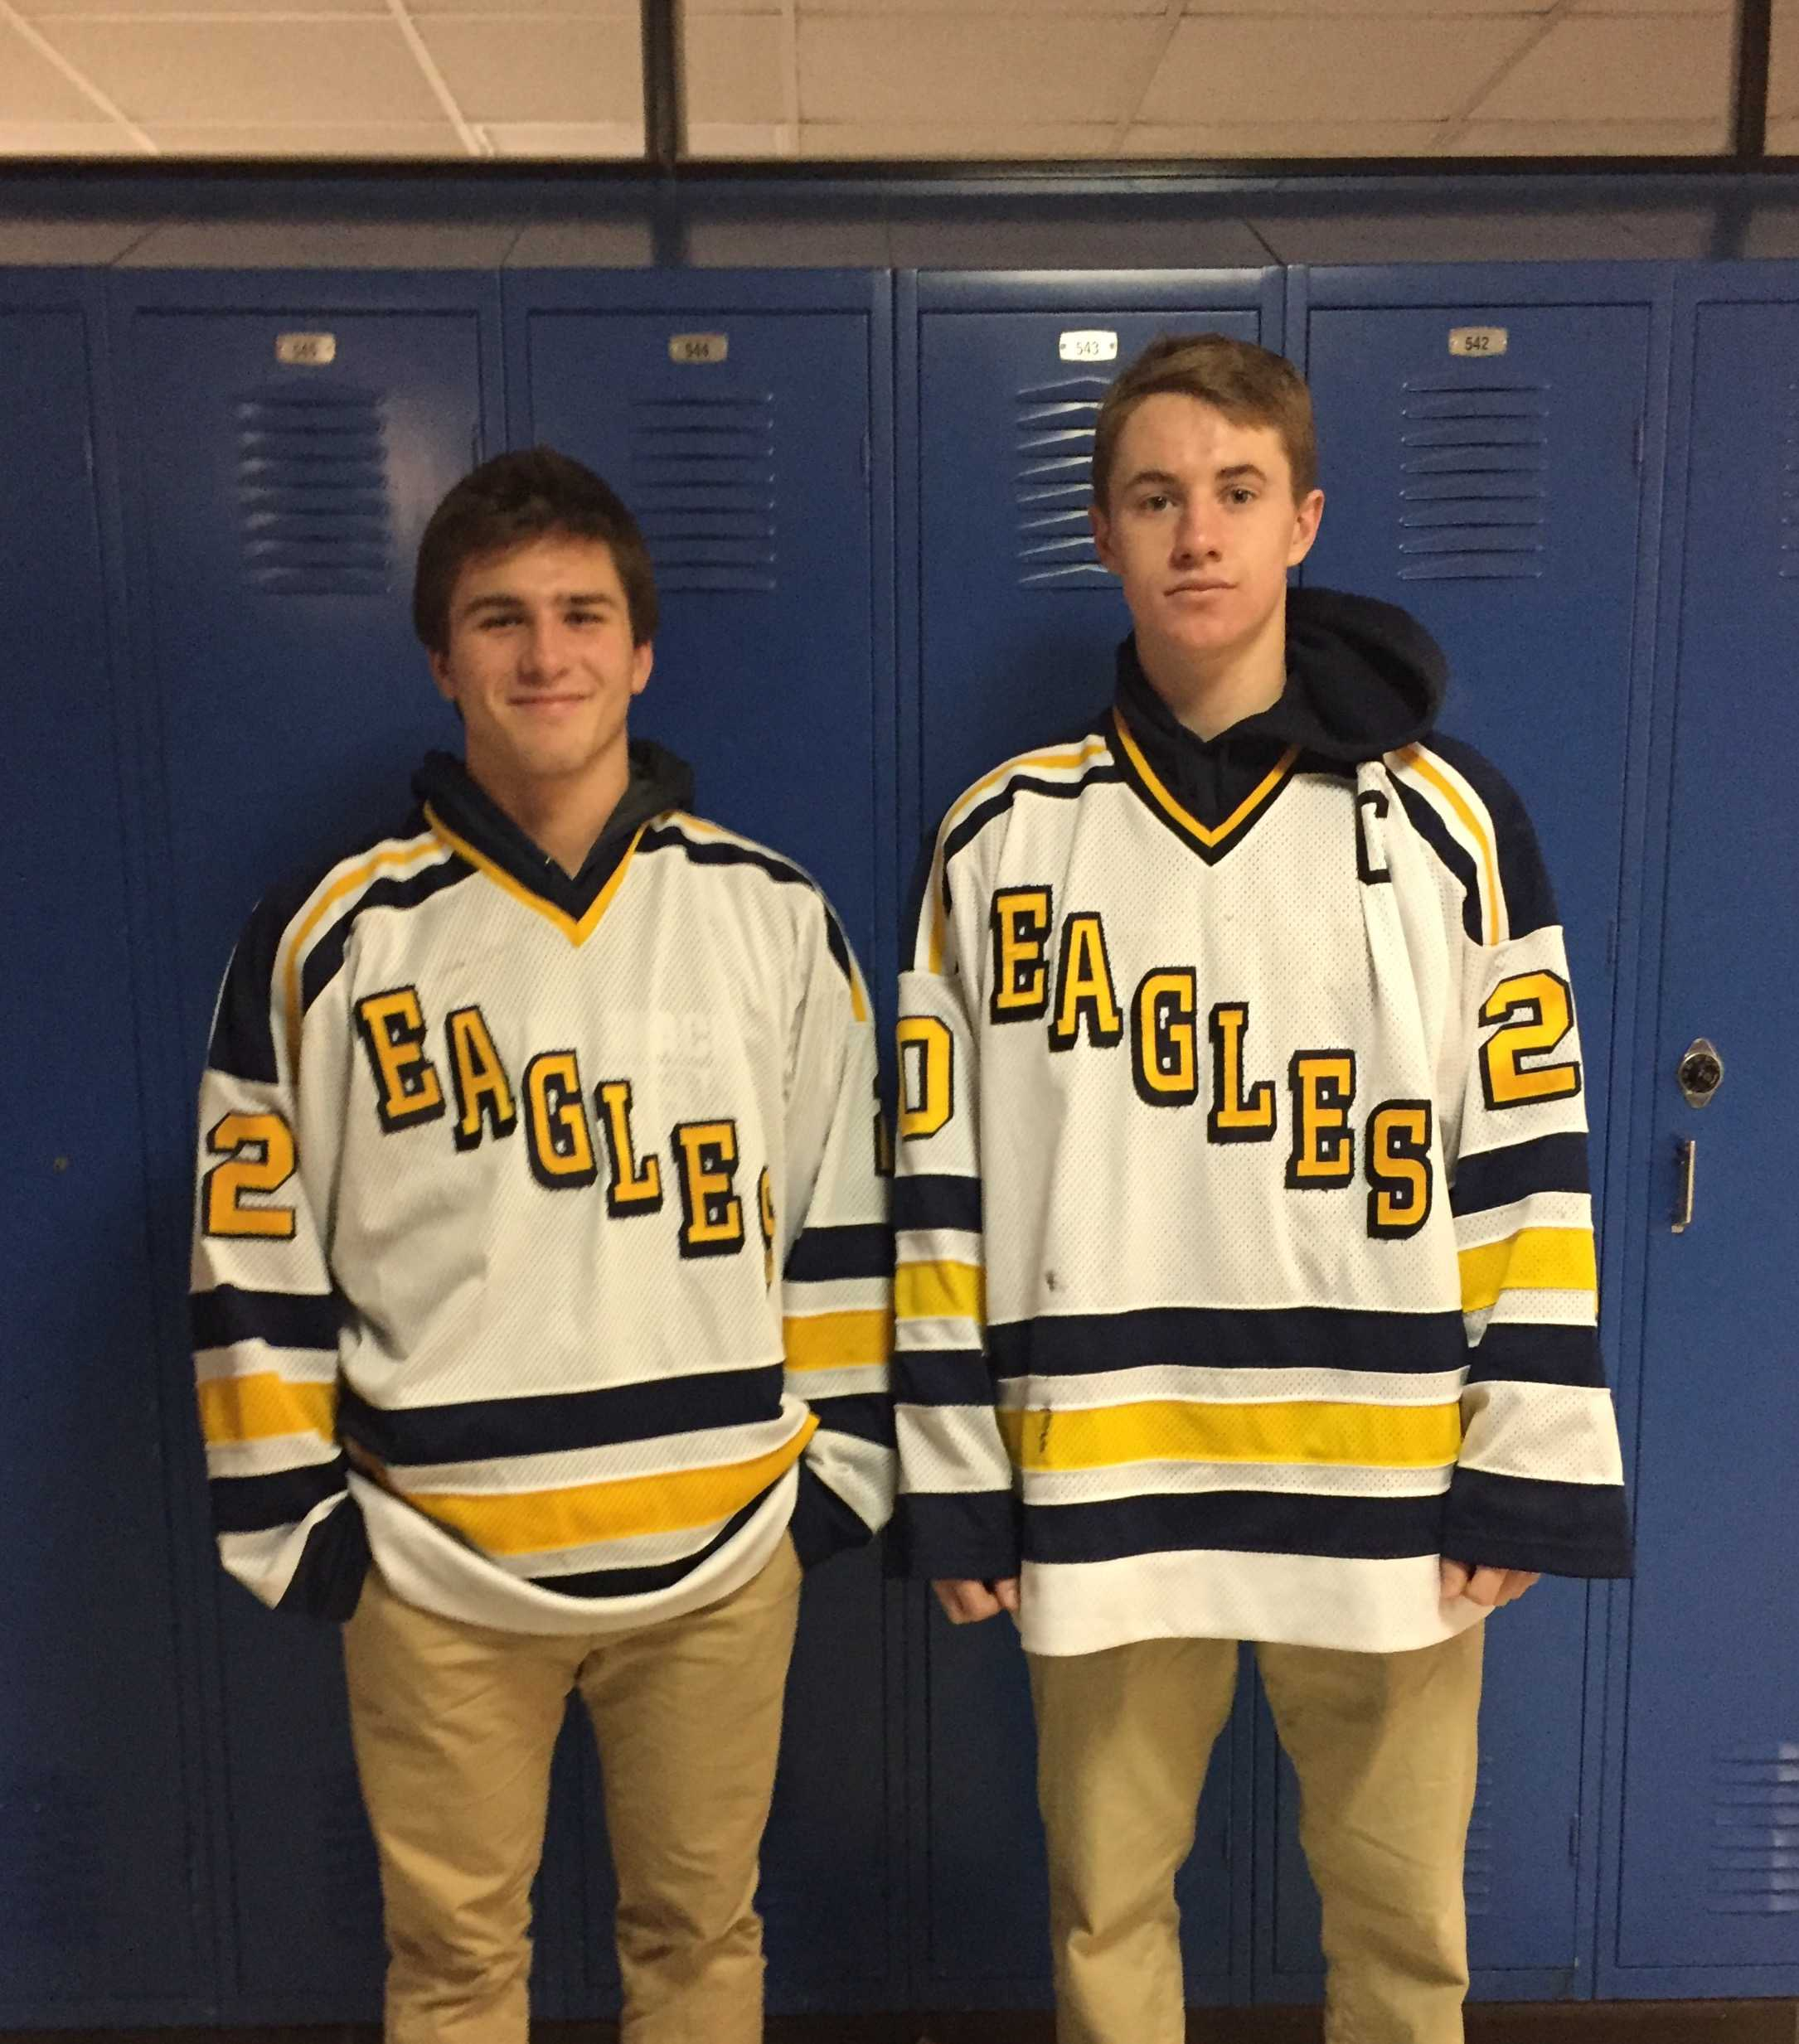 Pictured: Seniors Cam Fagerlee and Sam Hentges